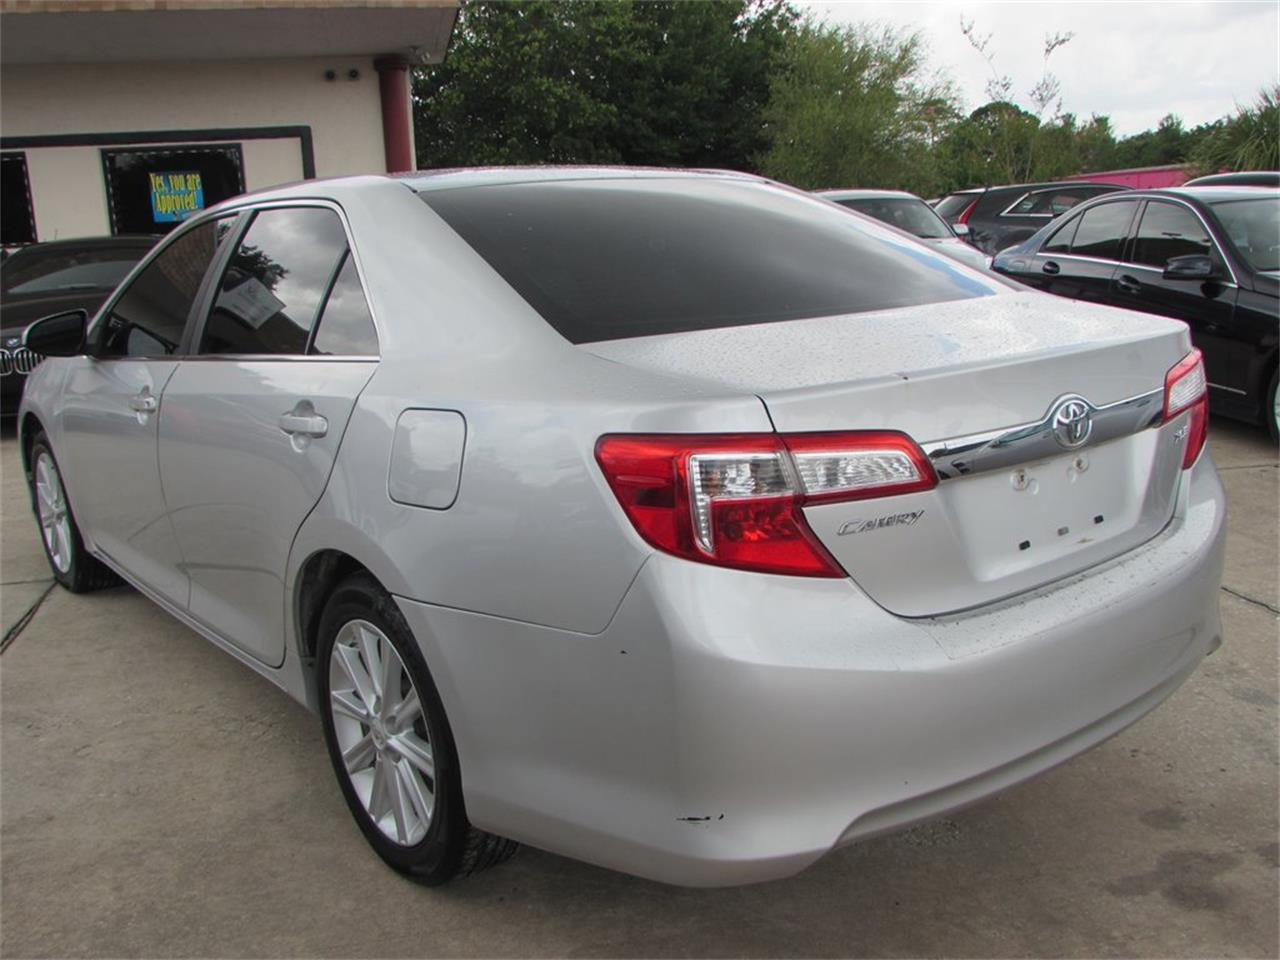 Large Picture of '12 Toyota Camry located in Florida - QBF0